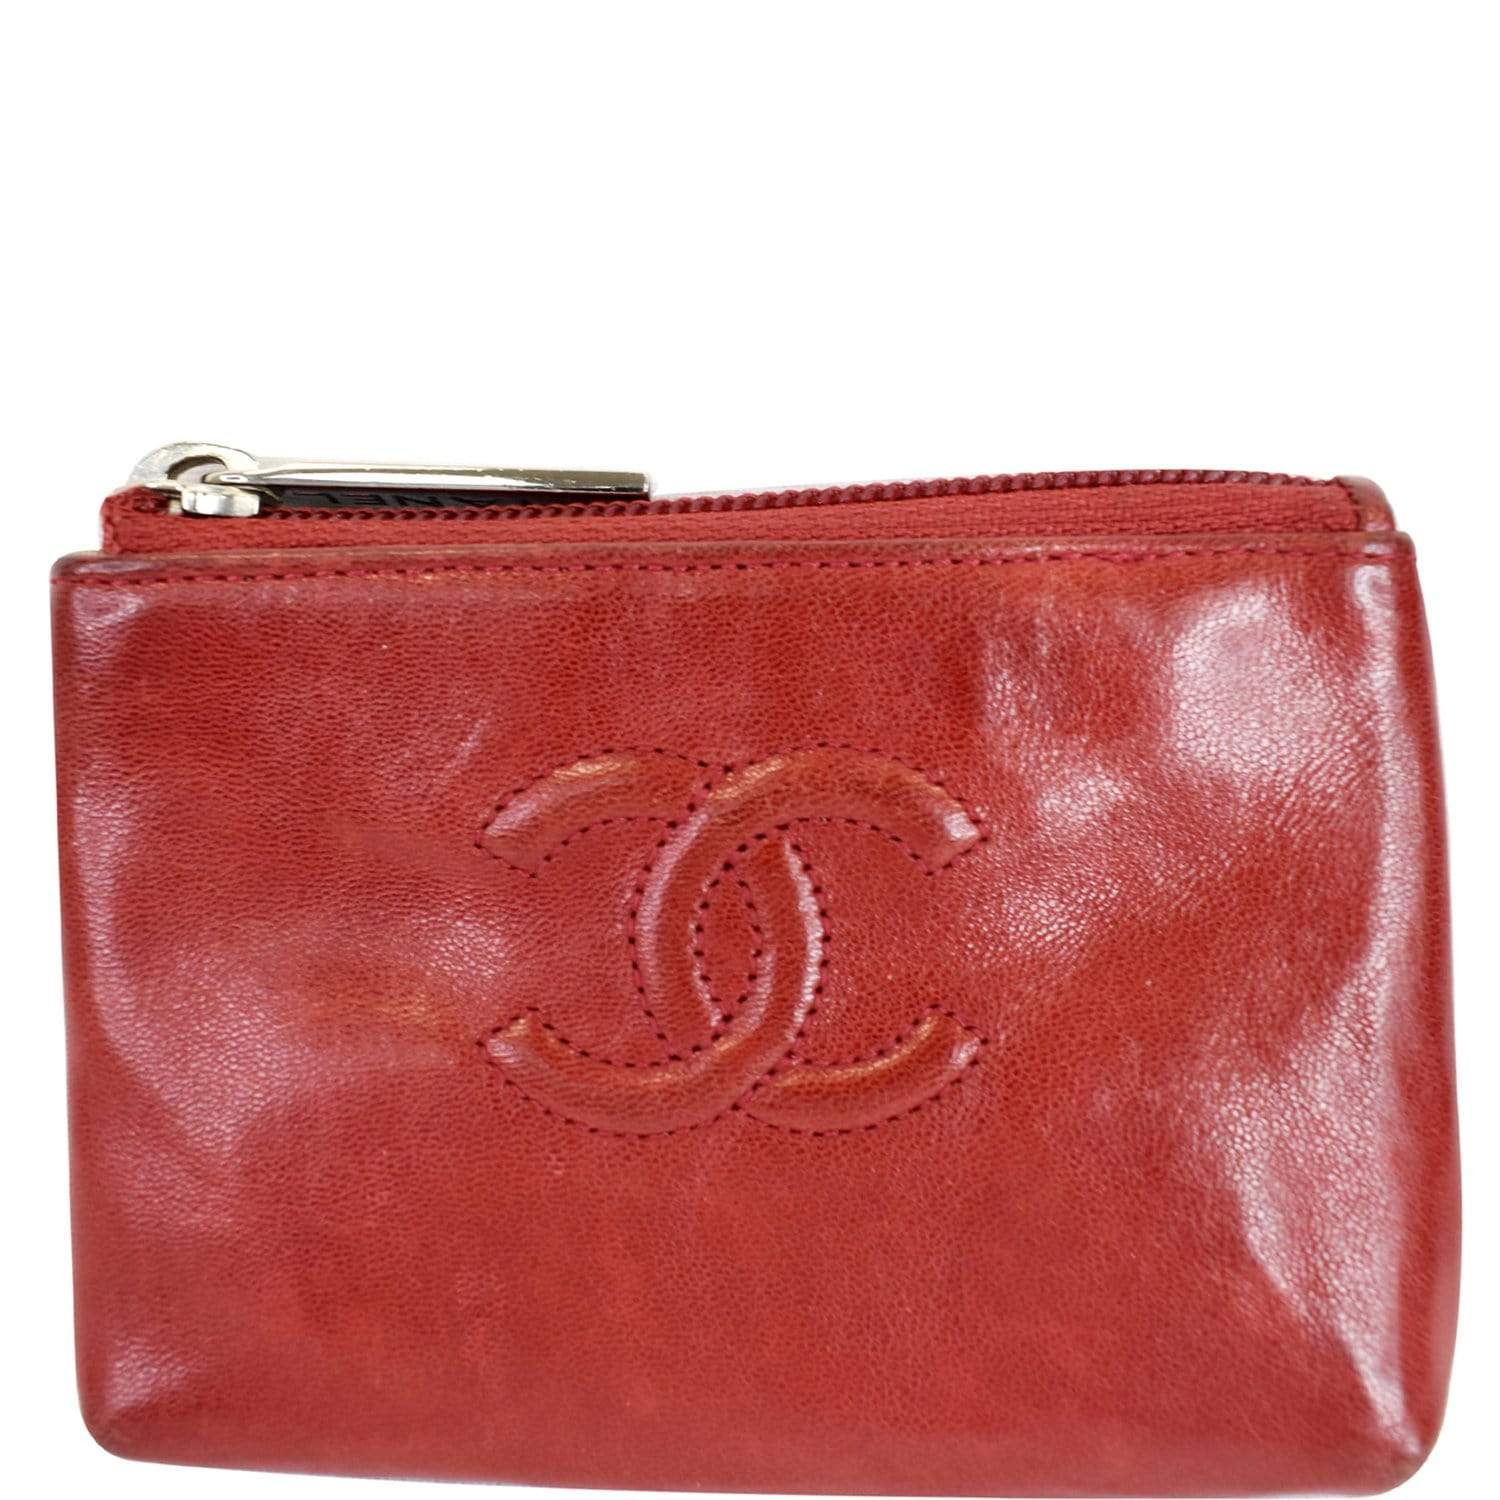 CHANEL CC Key Ring Lambskin Leather Coin Case Purse Red - 15% OFF